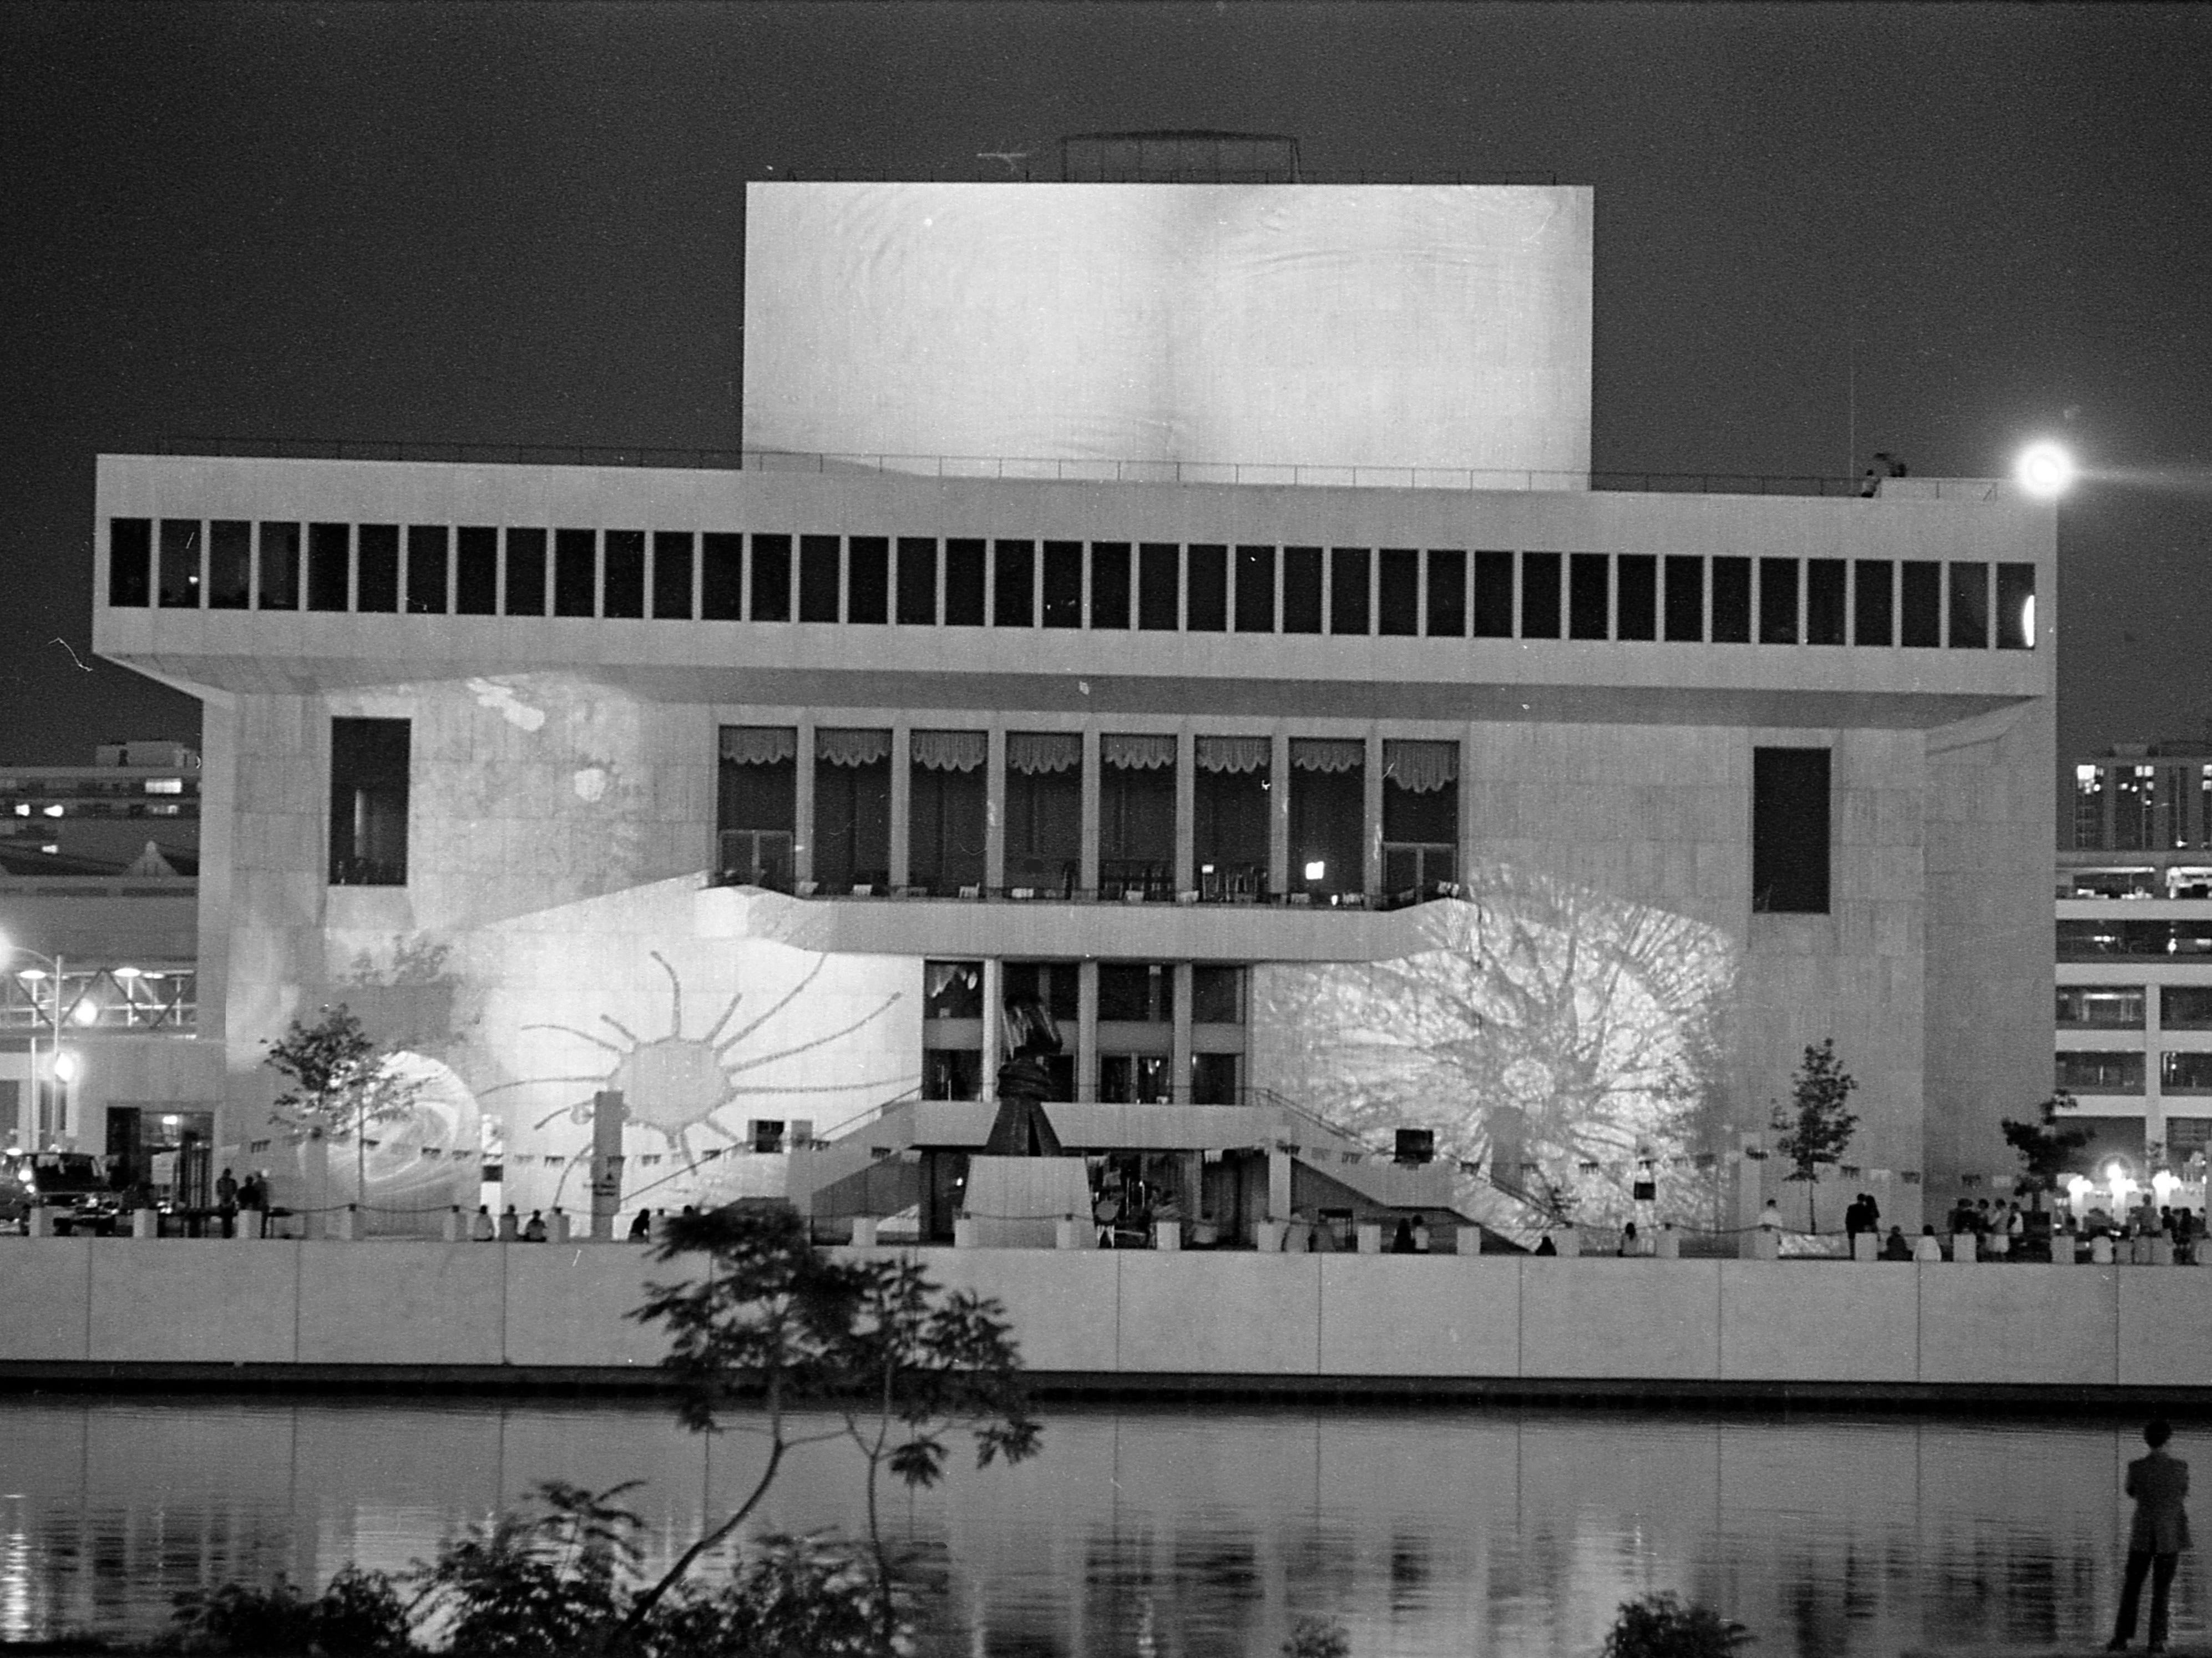 35mm film negative of a night shot of the new Milwaukee Performing Arts Center (now known as the Marcus Center for the Performing Arts) or PAC at 929 N. Water St. Construction began on June 27, 1966. This photo shows the west side of the exterior.  it was taken from across the river at Pere Marquette park and shows abstract images projected on the walls of the center.  Photo was filed 10/13/1969 Neg #69562 exterior, building, music, performance, stage, theater, Uihlein Hall, Todd Wehr hall, Peck Pavilion.